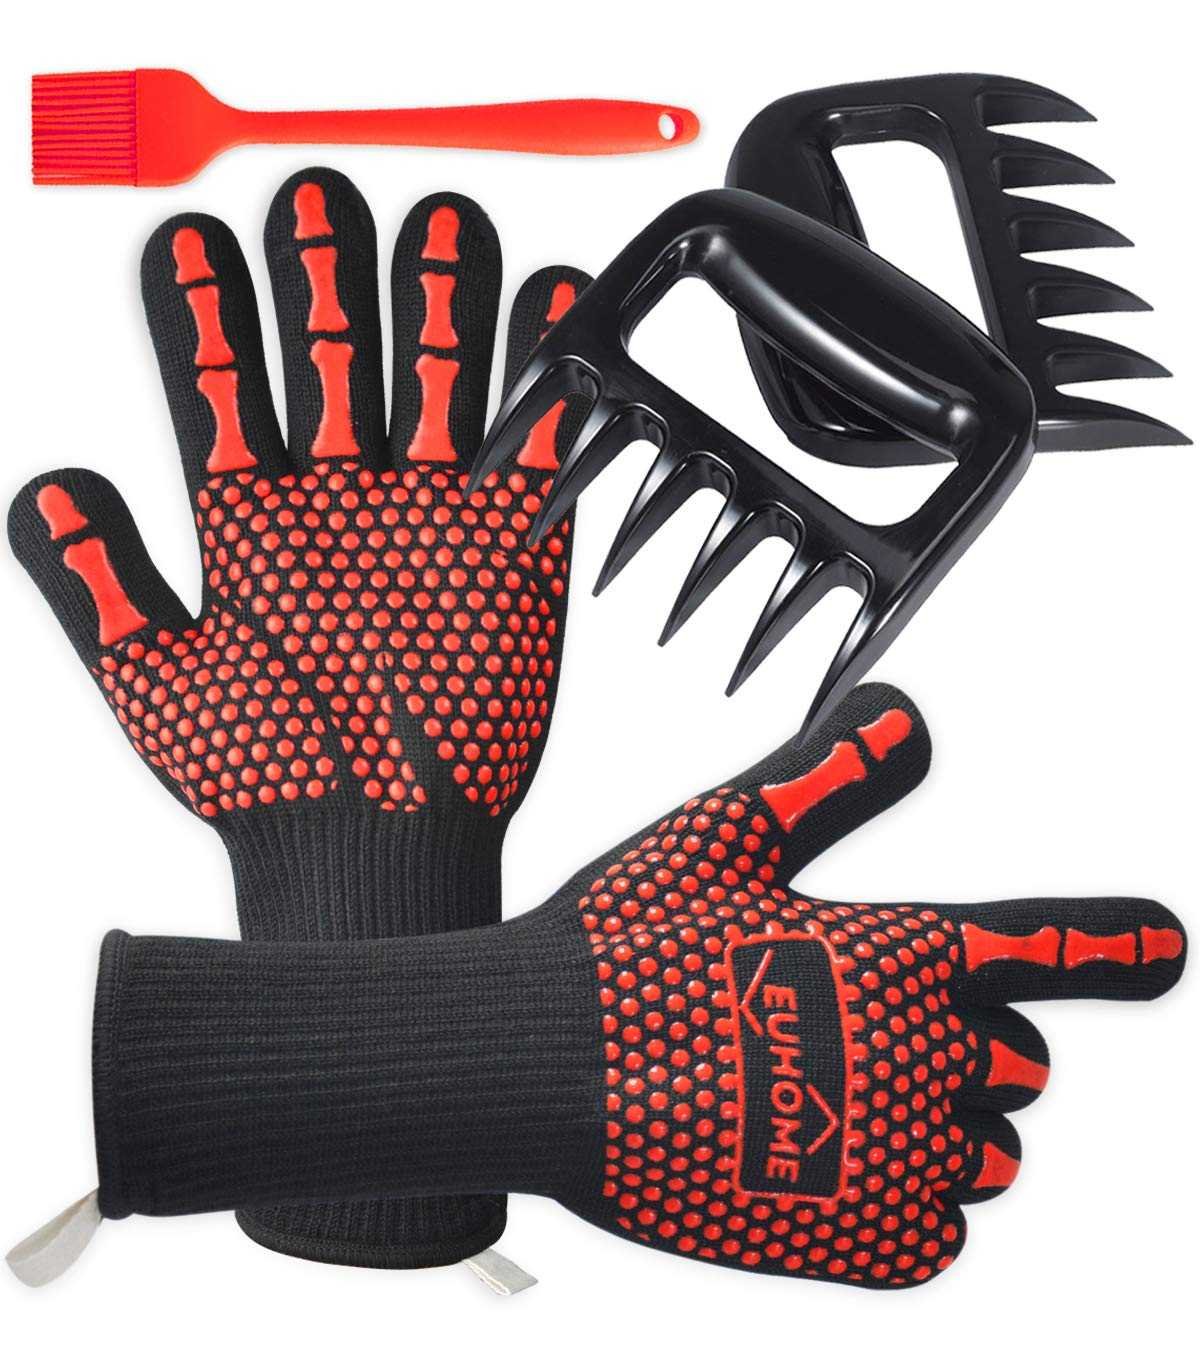 EUHOME 3 in 1 BBQ Gloves Grill Accessories with EN407 Certified Oven Mitts 1472 F° Extremely Heat Resistant Gloves, Grill Brush & BBQ Bear Claws for Men, Grill, Baking, Christmas